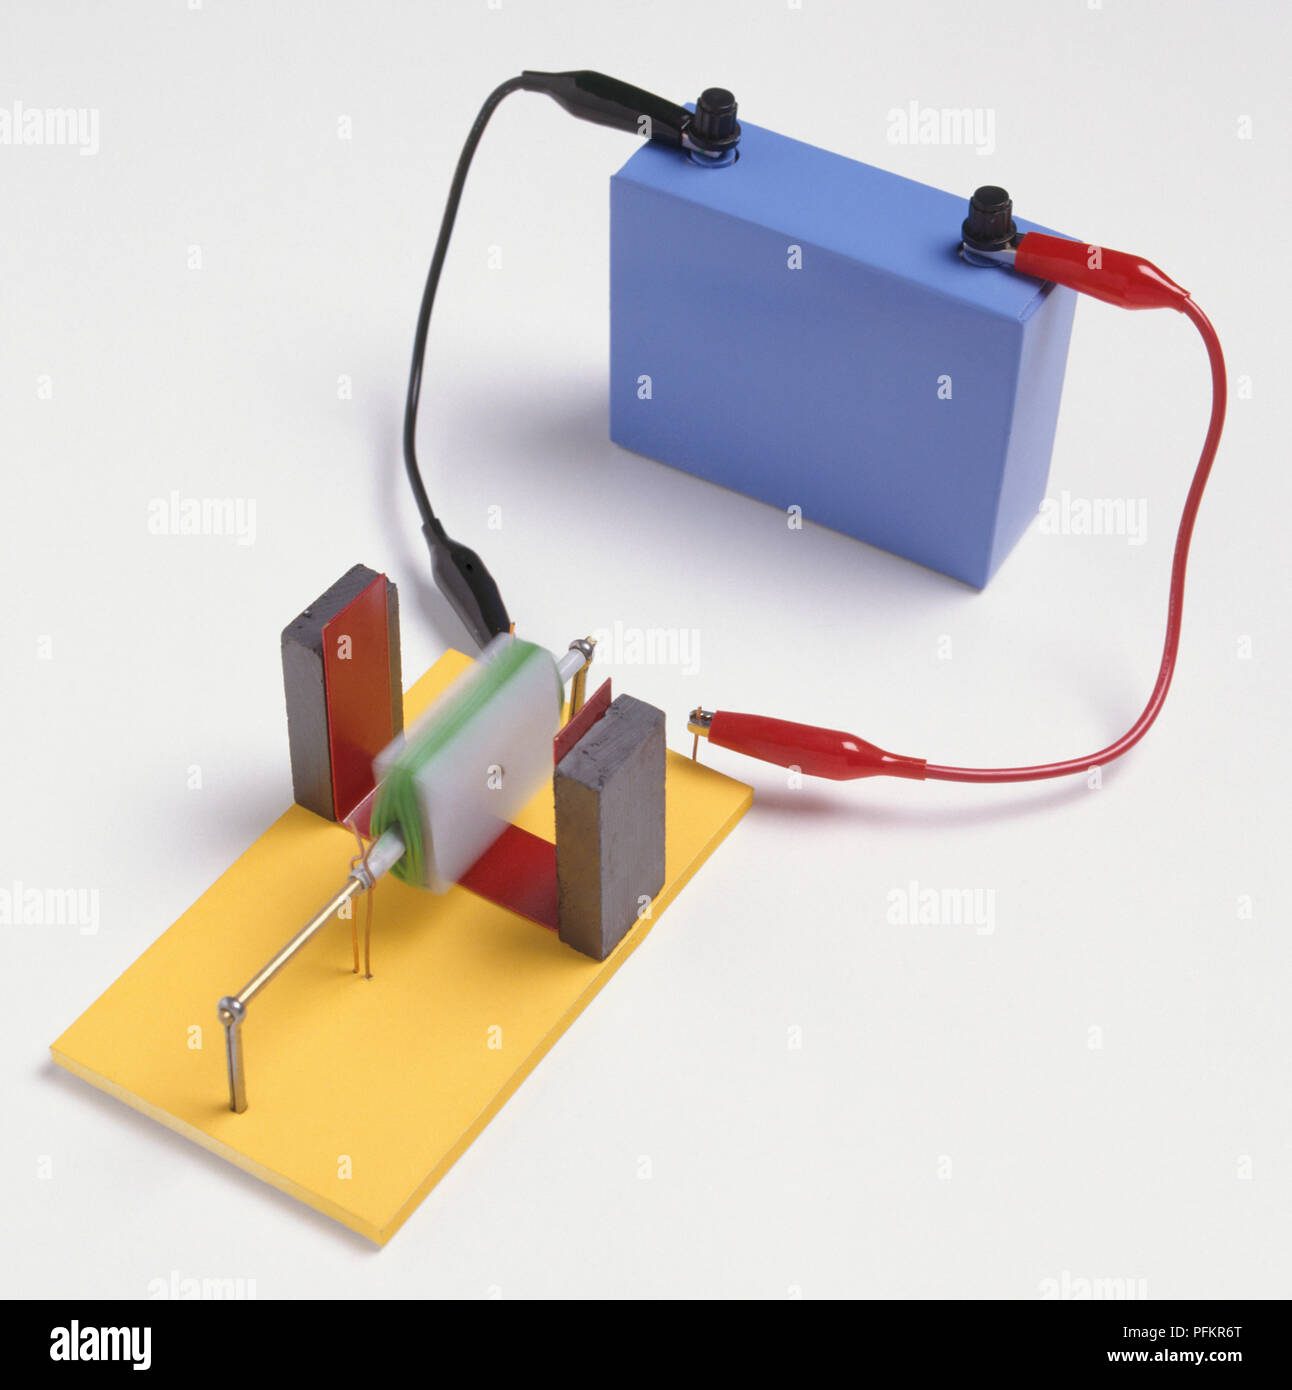 A basic electric motor consisting of a battery, magnets ... on wire fire, wire electrical, wire code, wire copper, wire metal, wire car, wire machine, wire way, wire light, wire lighting, wire resistance, wire track, wire graphic, wire coil, wire cross, wire design, wire ring, wire harness drawing, wire generator to breaker box, wire switch,